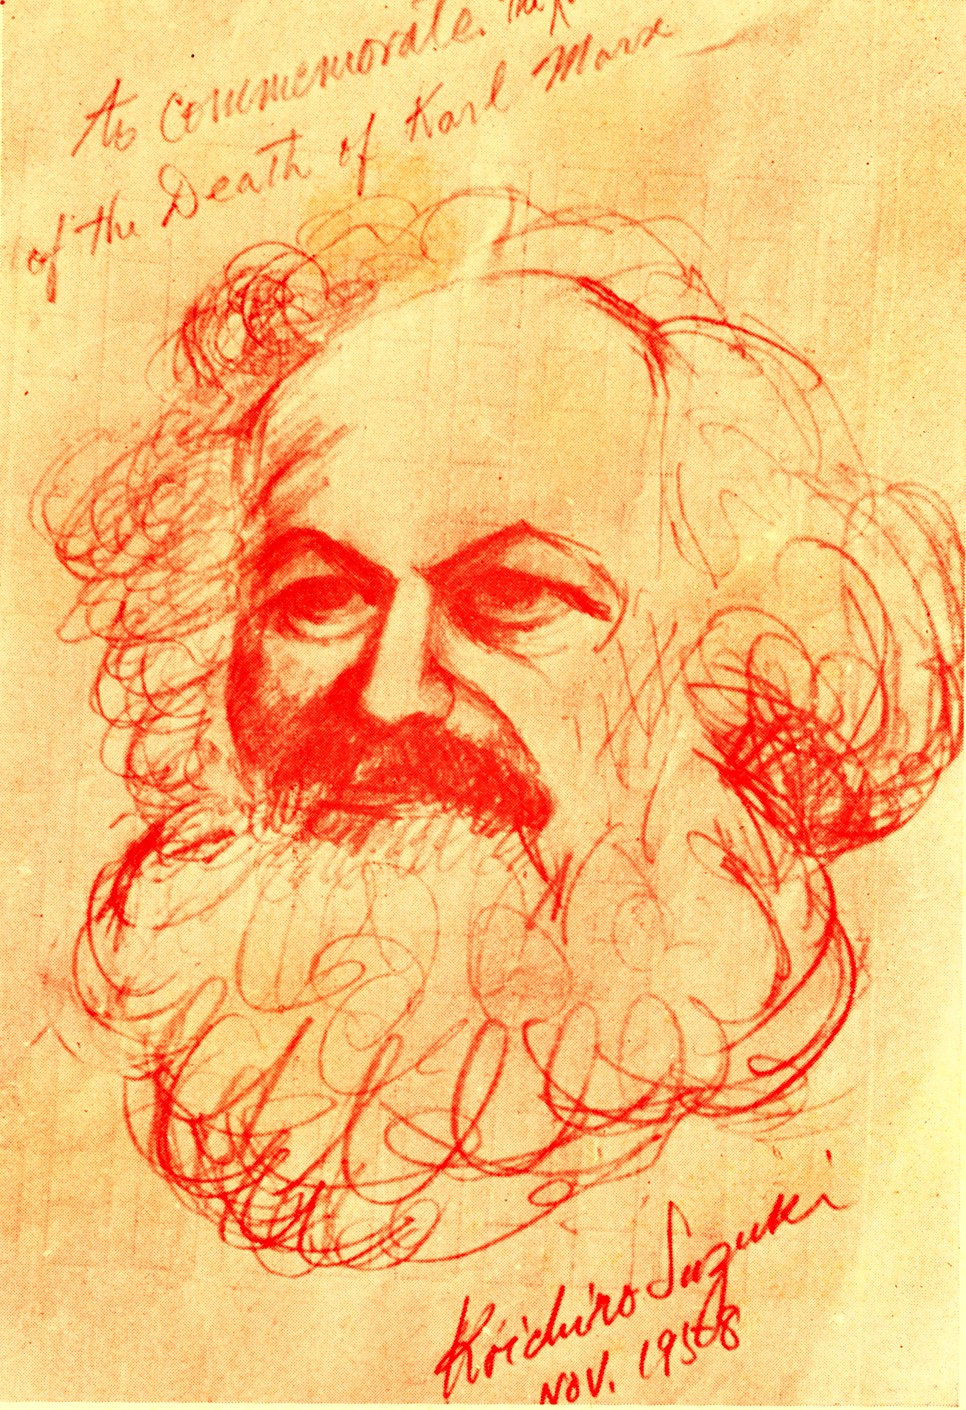 bourgeoisie and proletariat according to marx Chronology and context marx attempts to analyze/define the conflicts of his time as being between the bourgeoisie and the proletariat his intention is to create and mobilize a political force, just as locke's was.